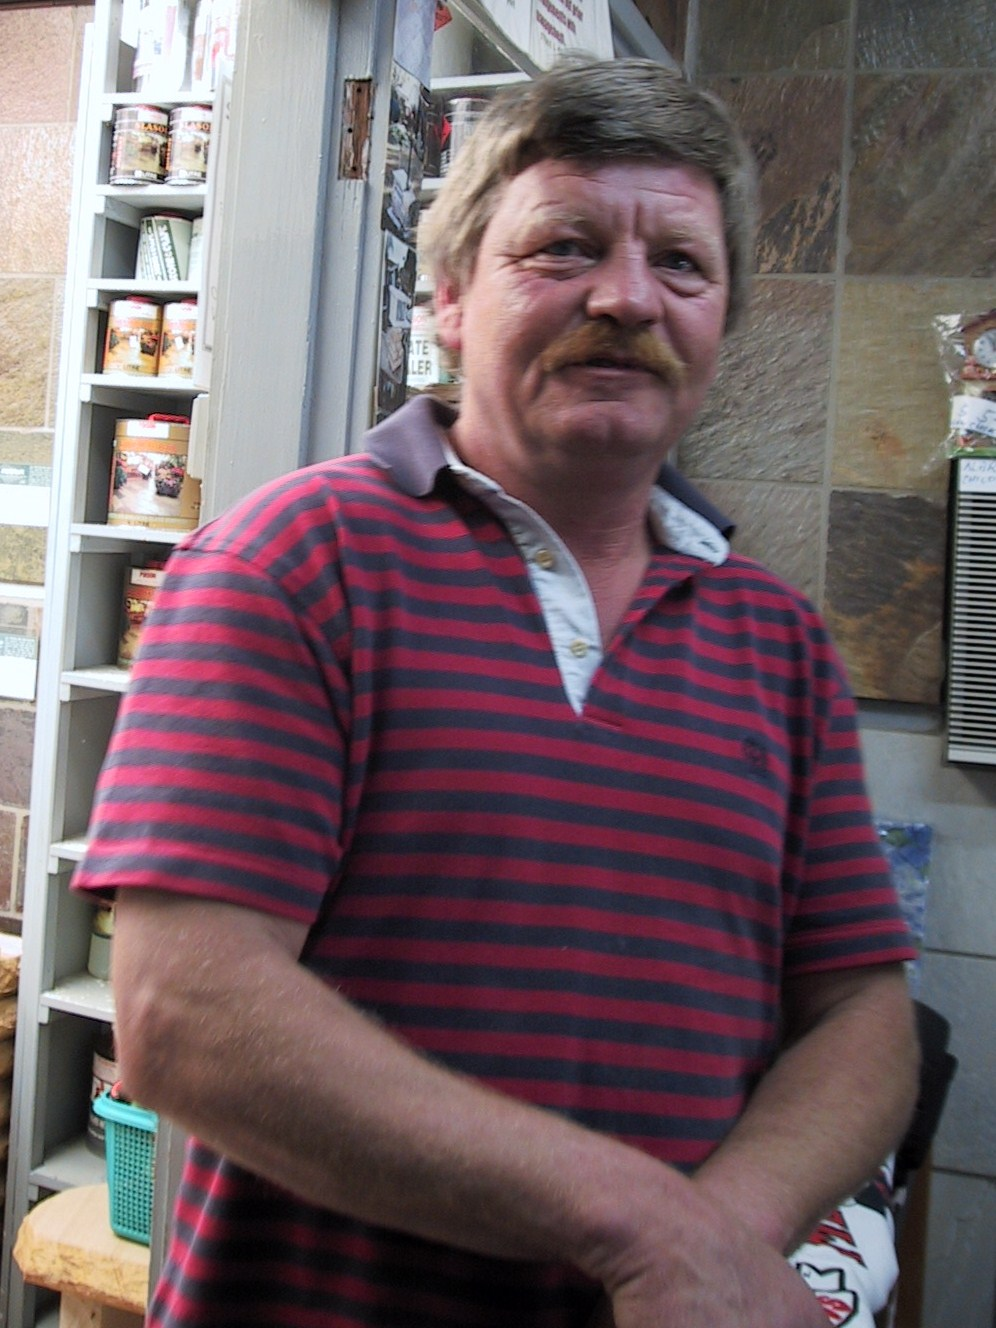 022 Our subcontracting  stone tiler Joseph is working for us 29 years now..JPG